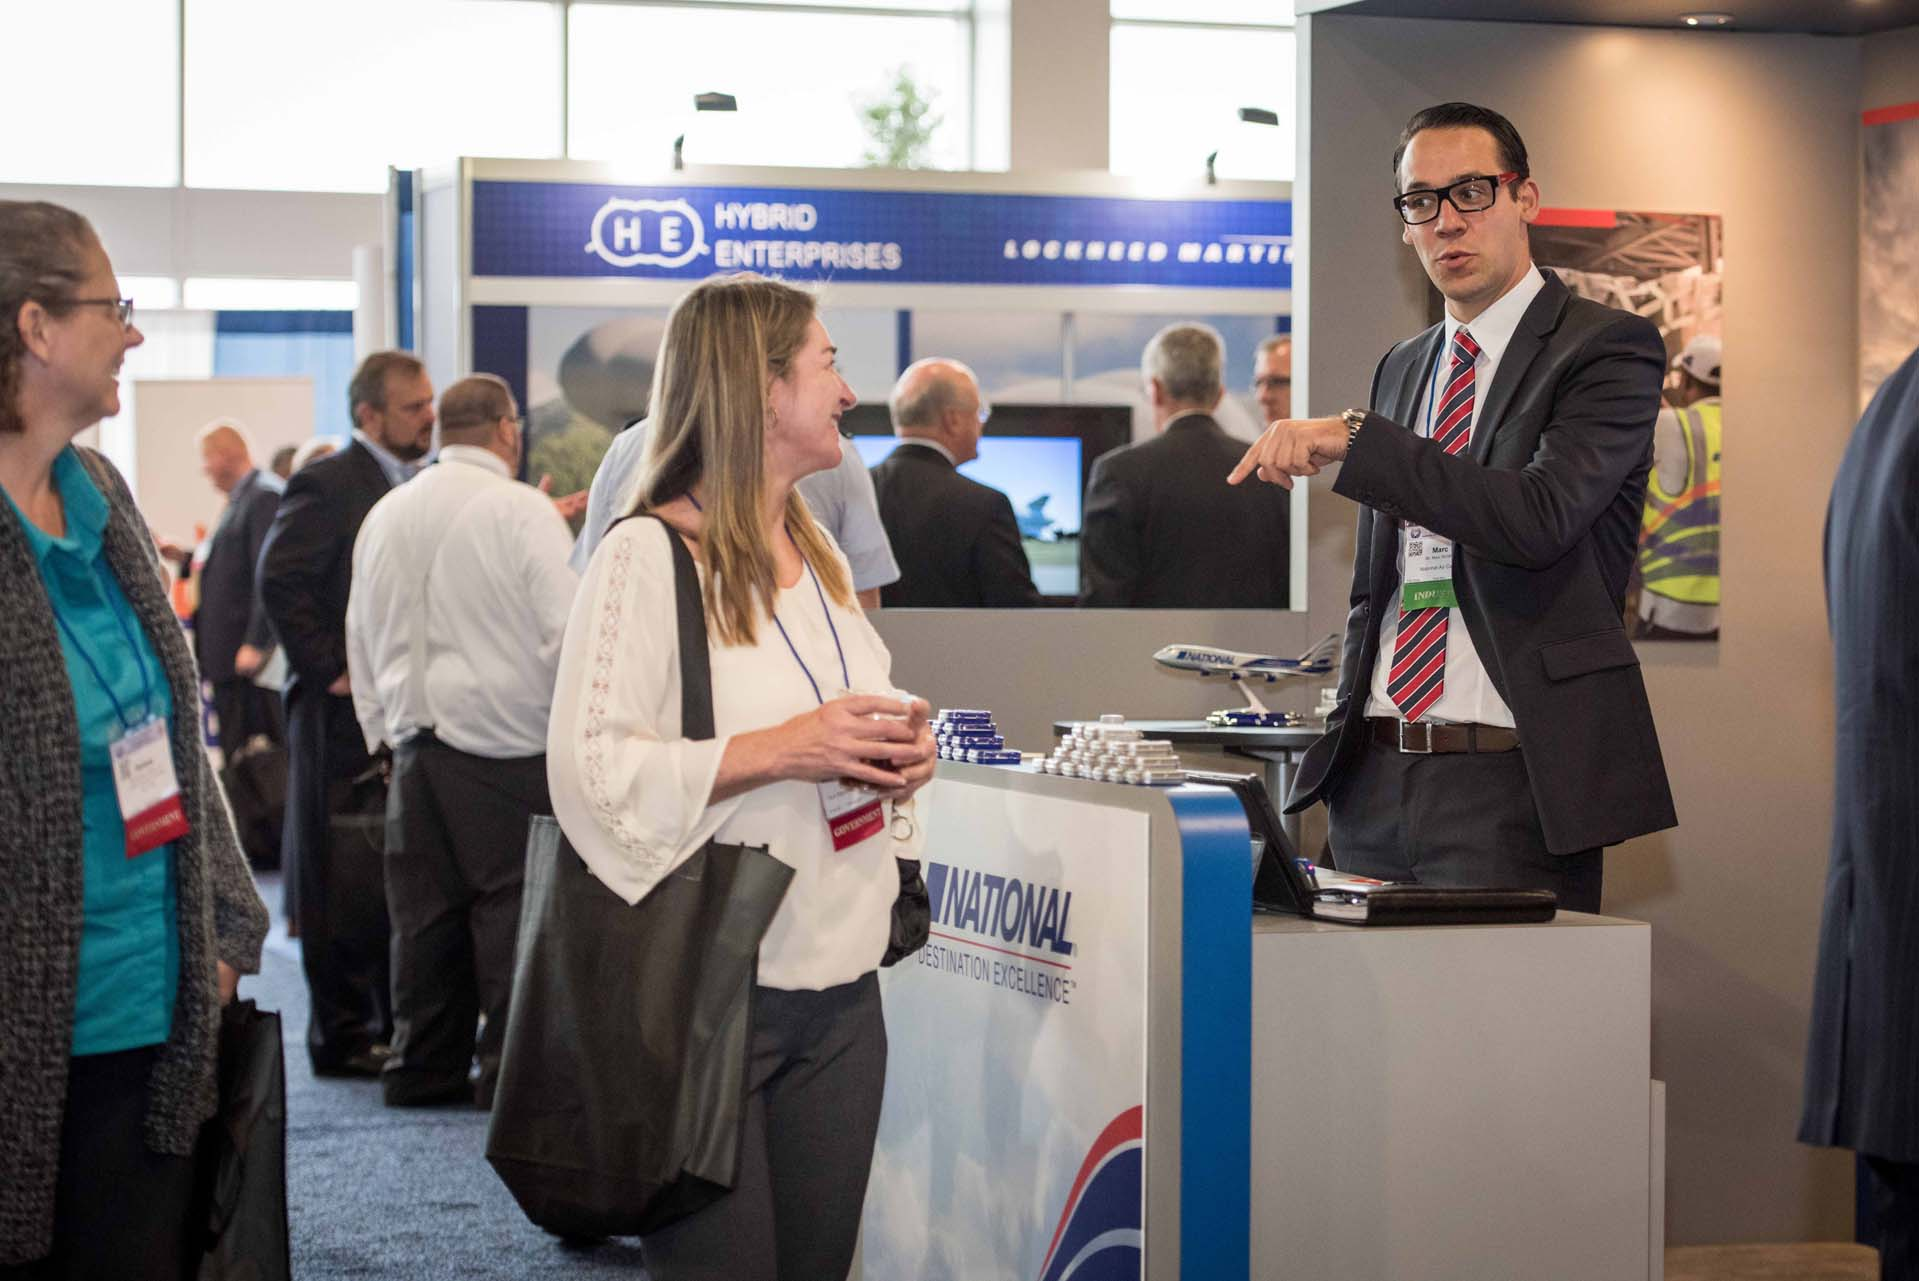 150929_NDTA-2015-Conference-Lunch-083